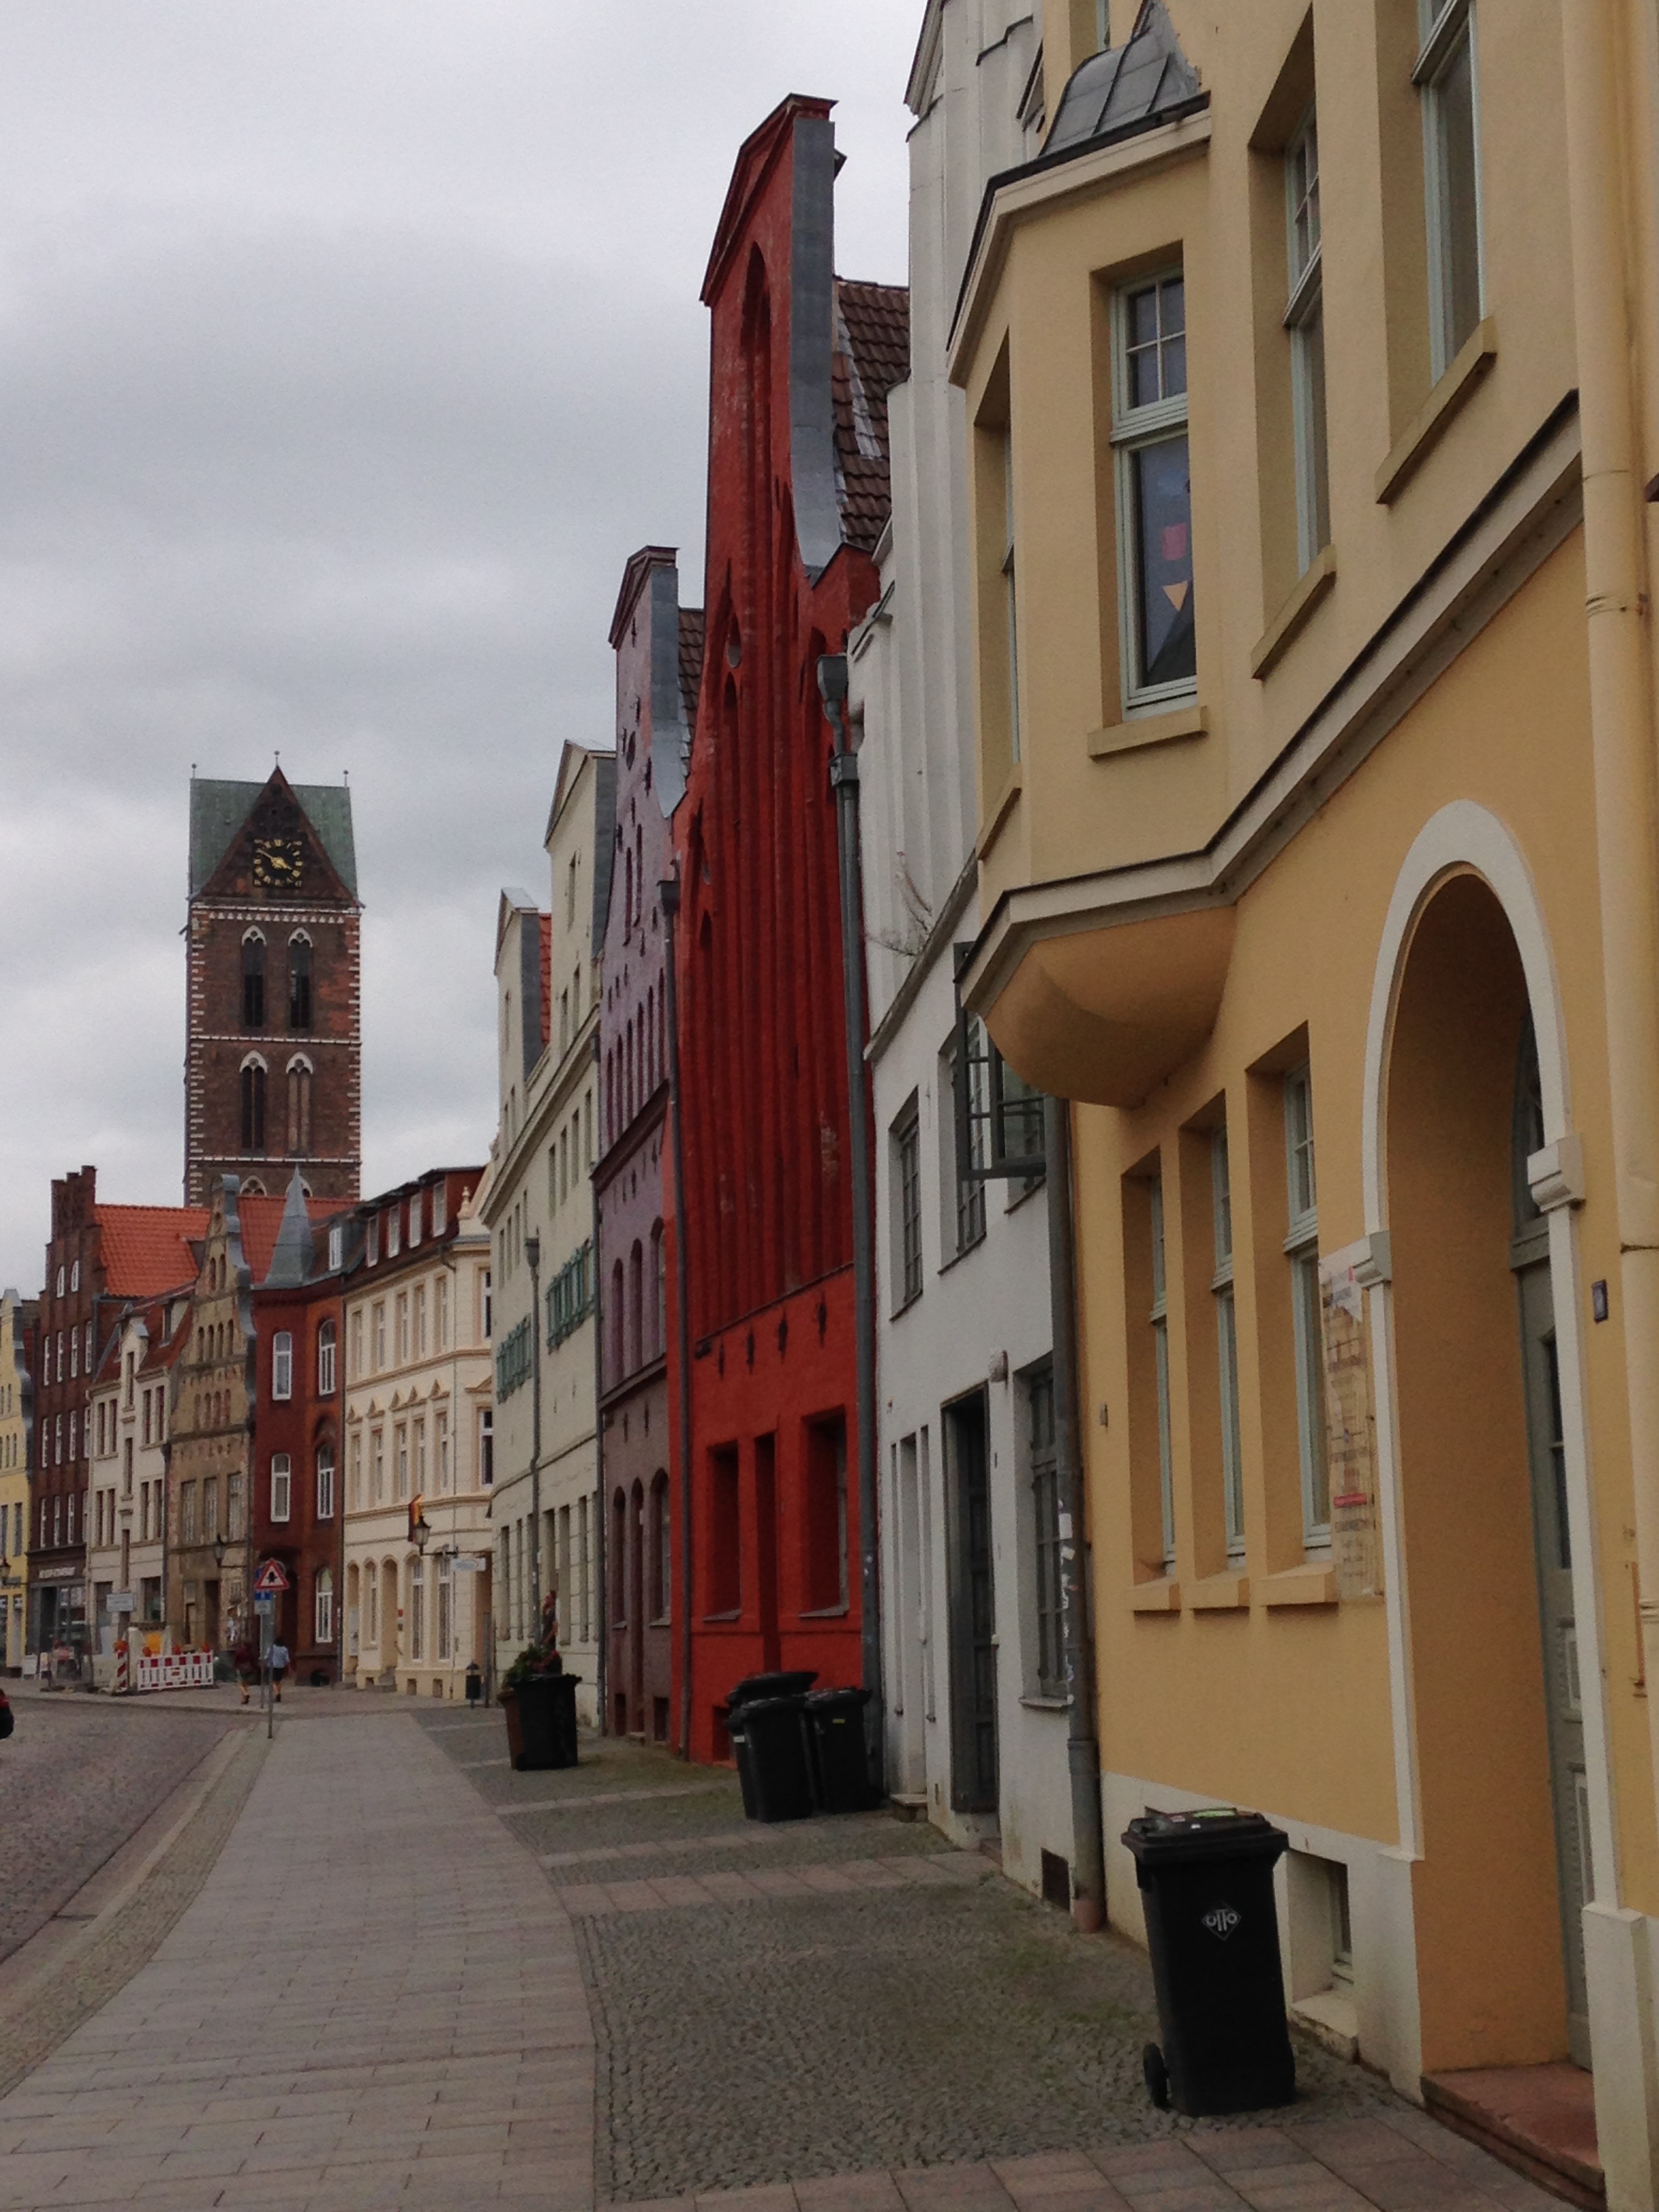 The old town of Wismar